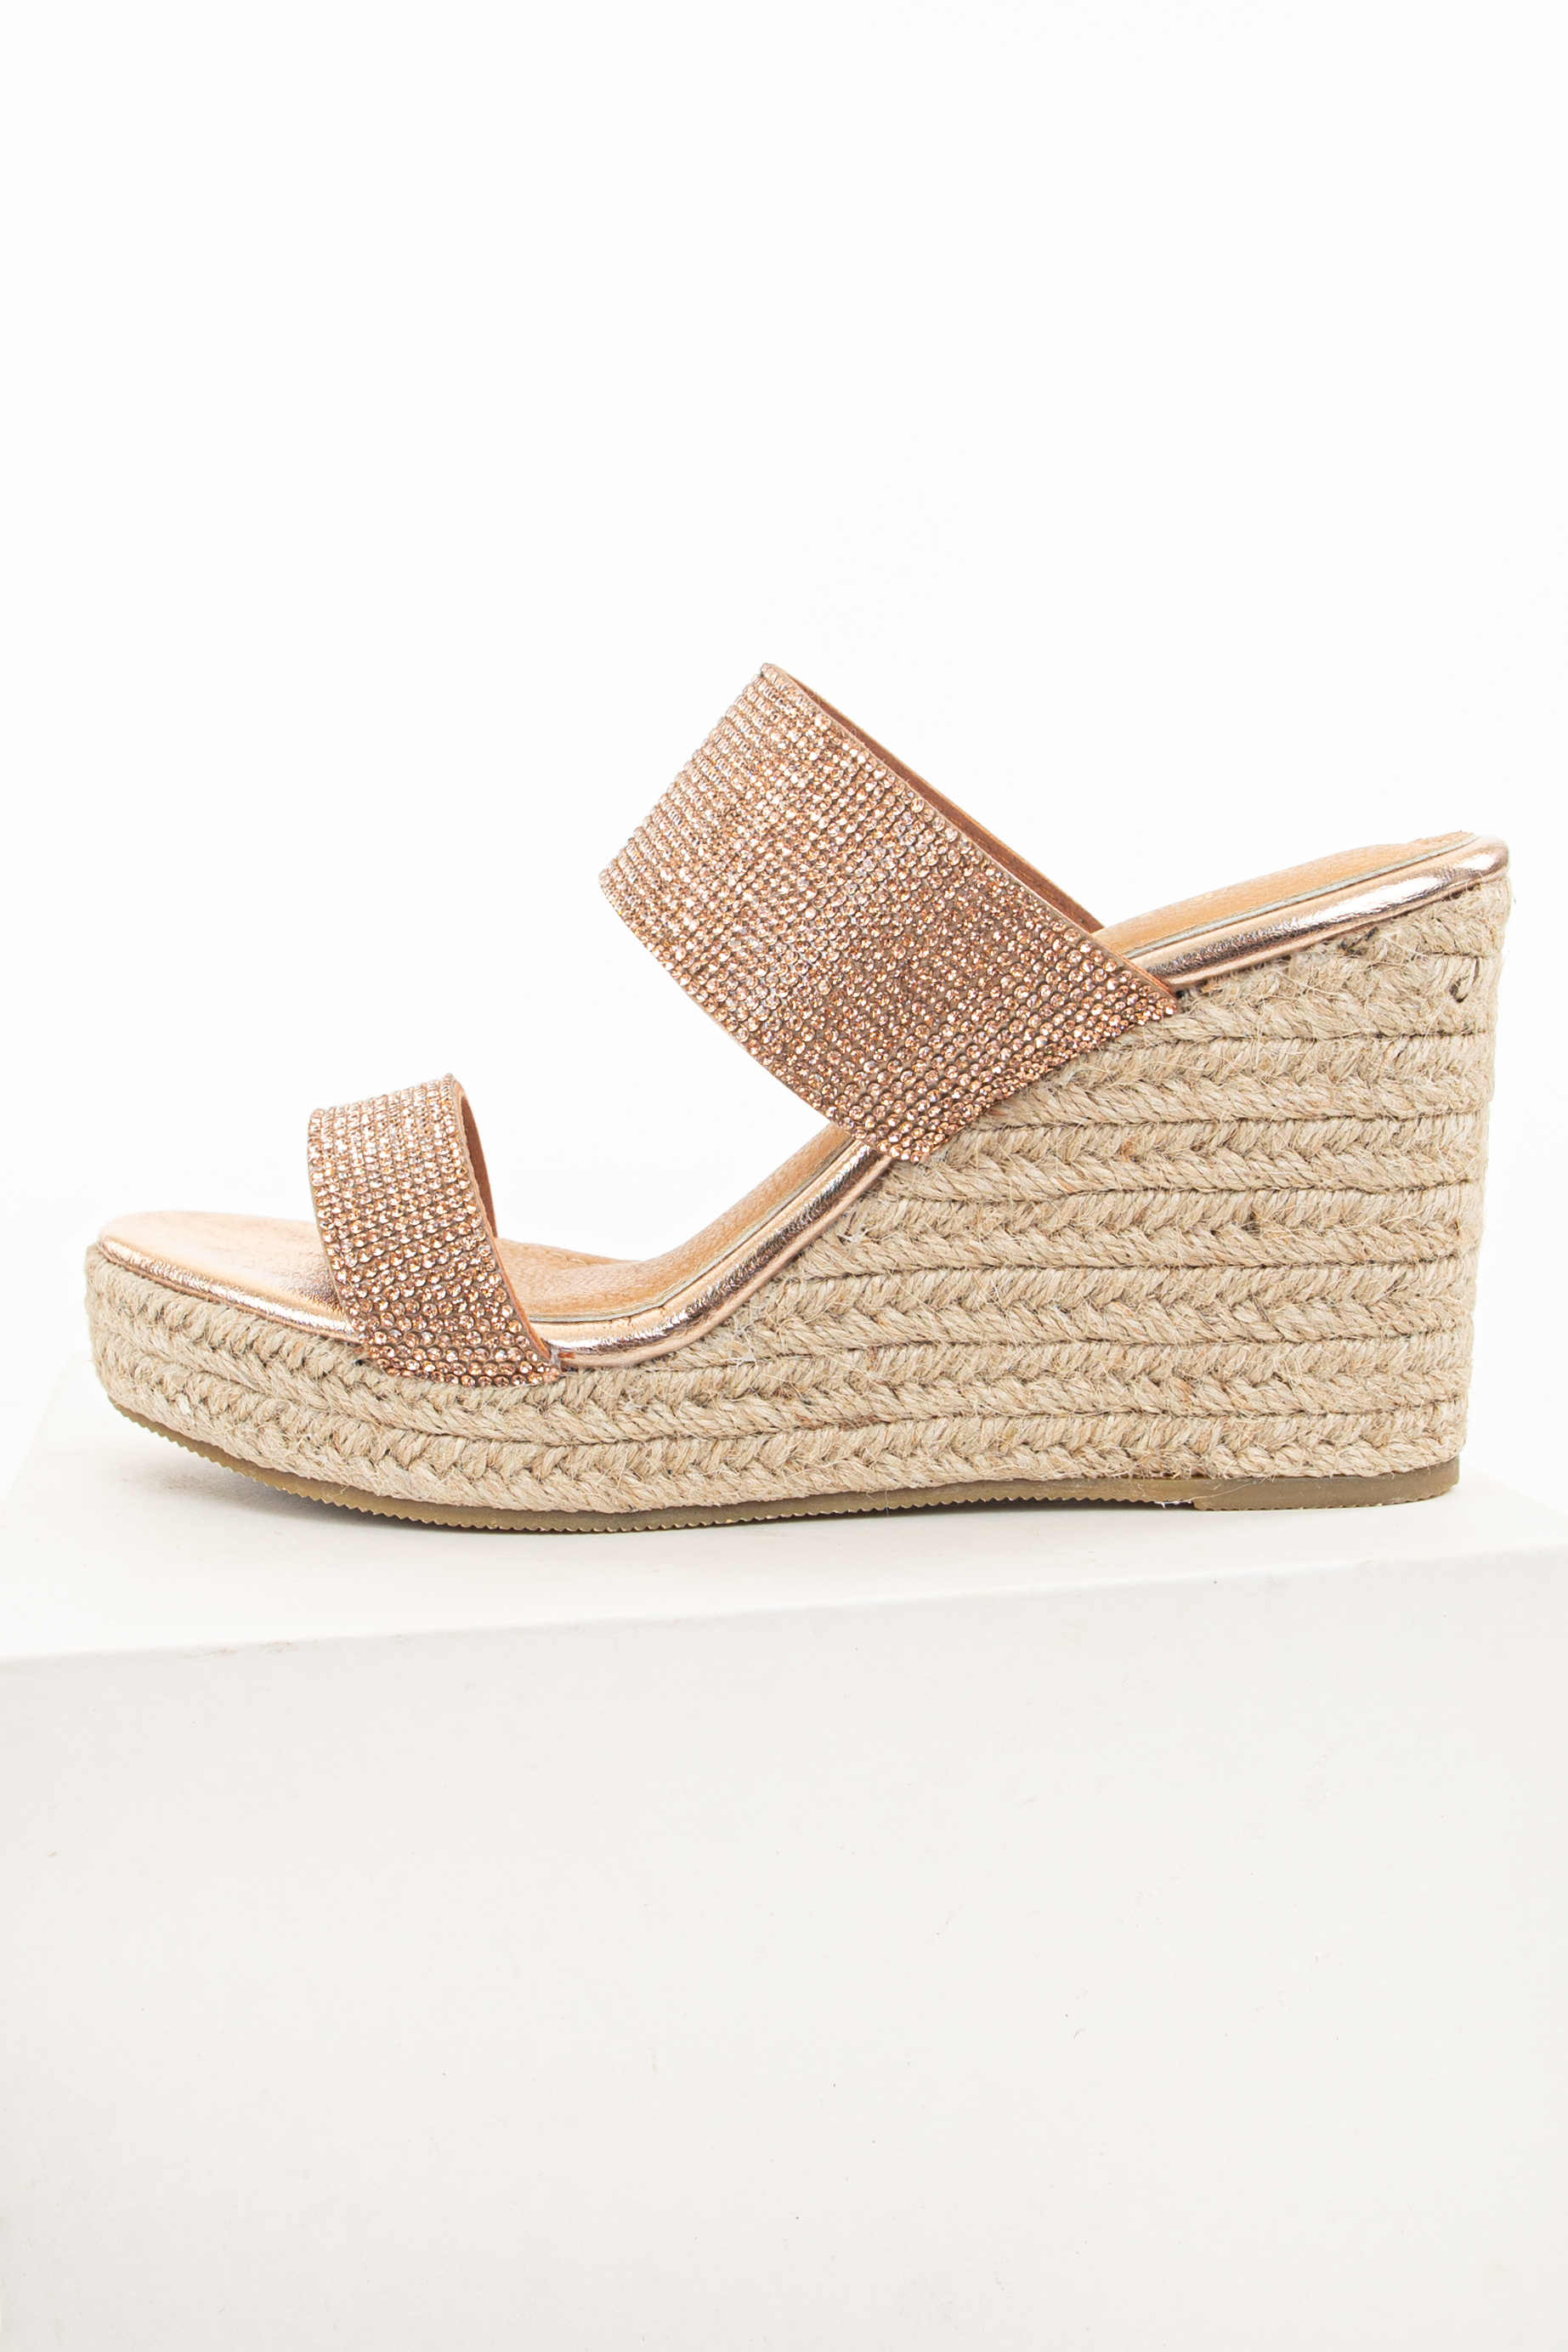 Rose Gold Espadrille Wedges with Rhinestone Details